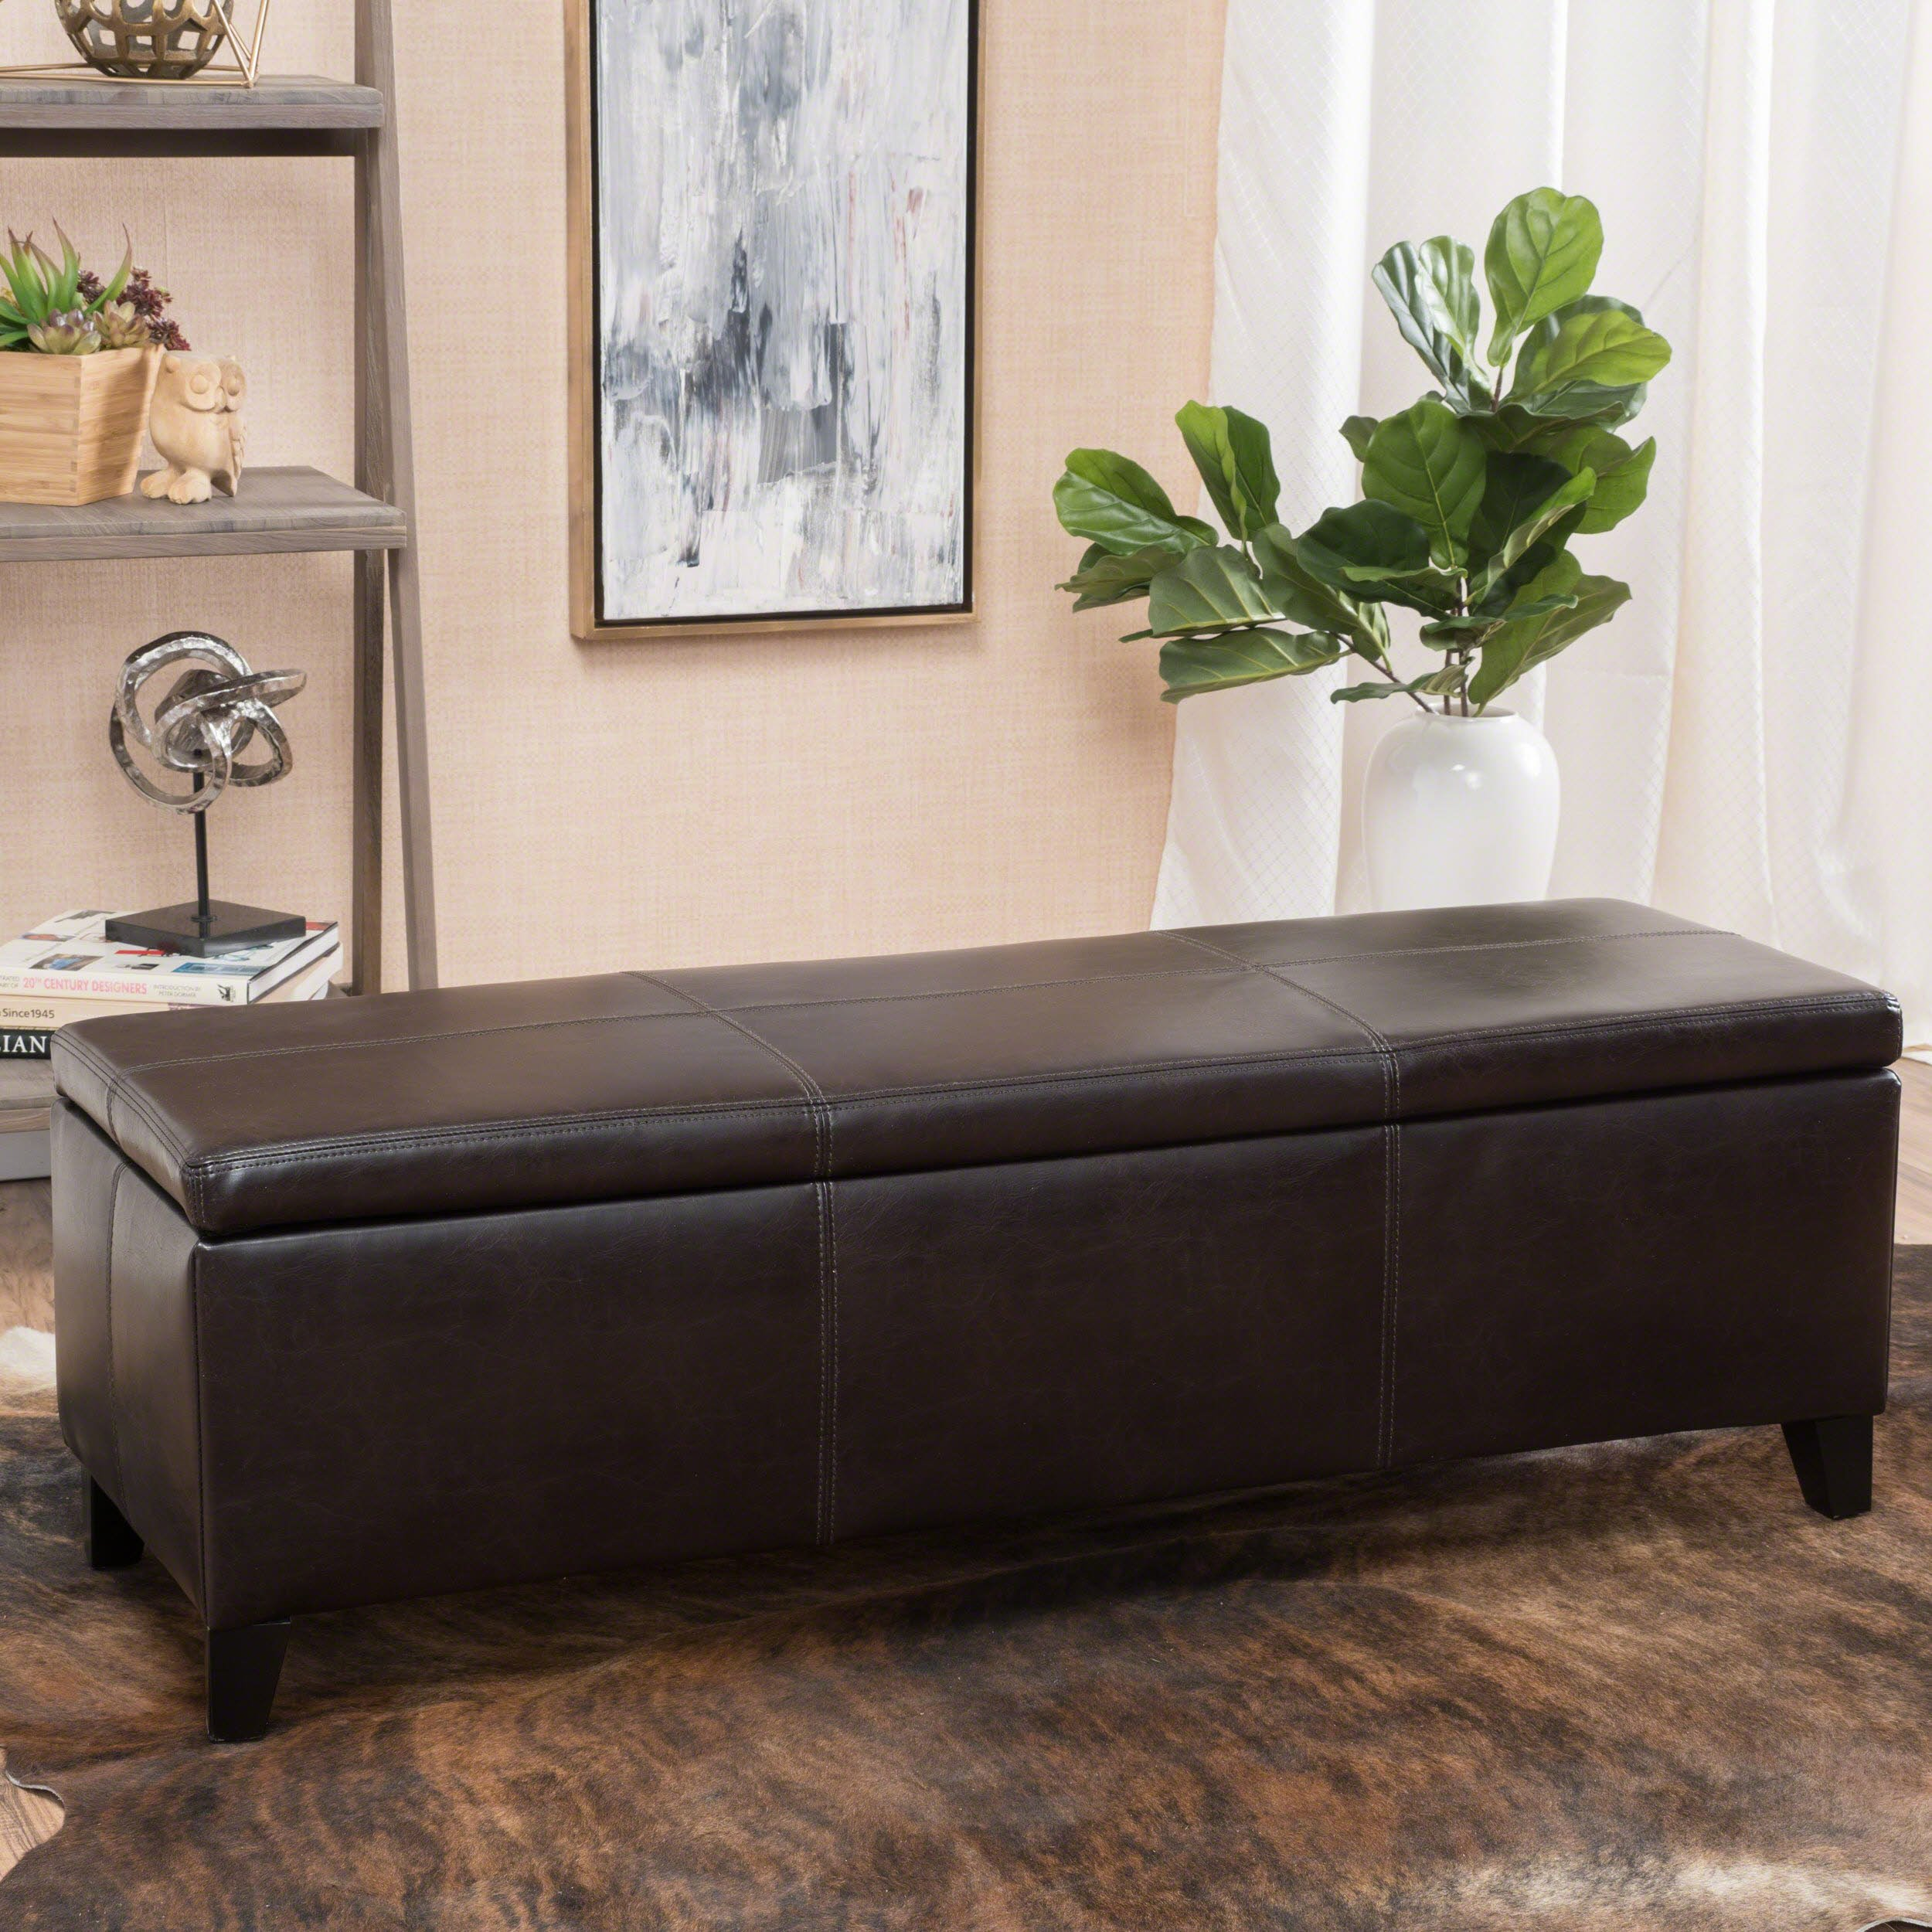 Christopher Knight Home 296844 Living Deal Furniture | Skyler Faux Leather Storage Ottoman Bench | in Brown by Christopher Knight Home